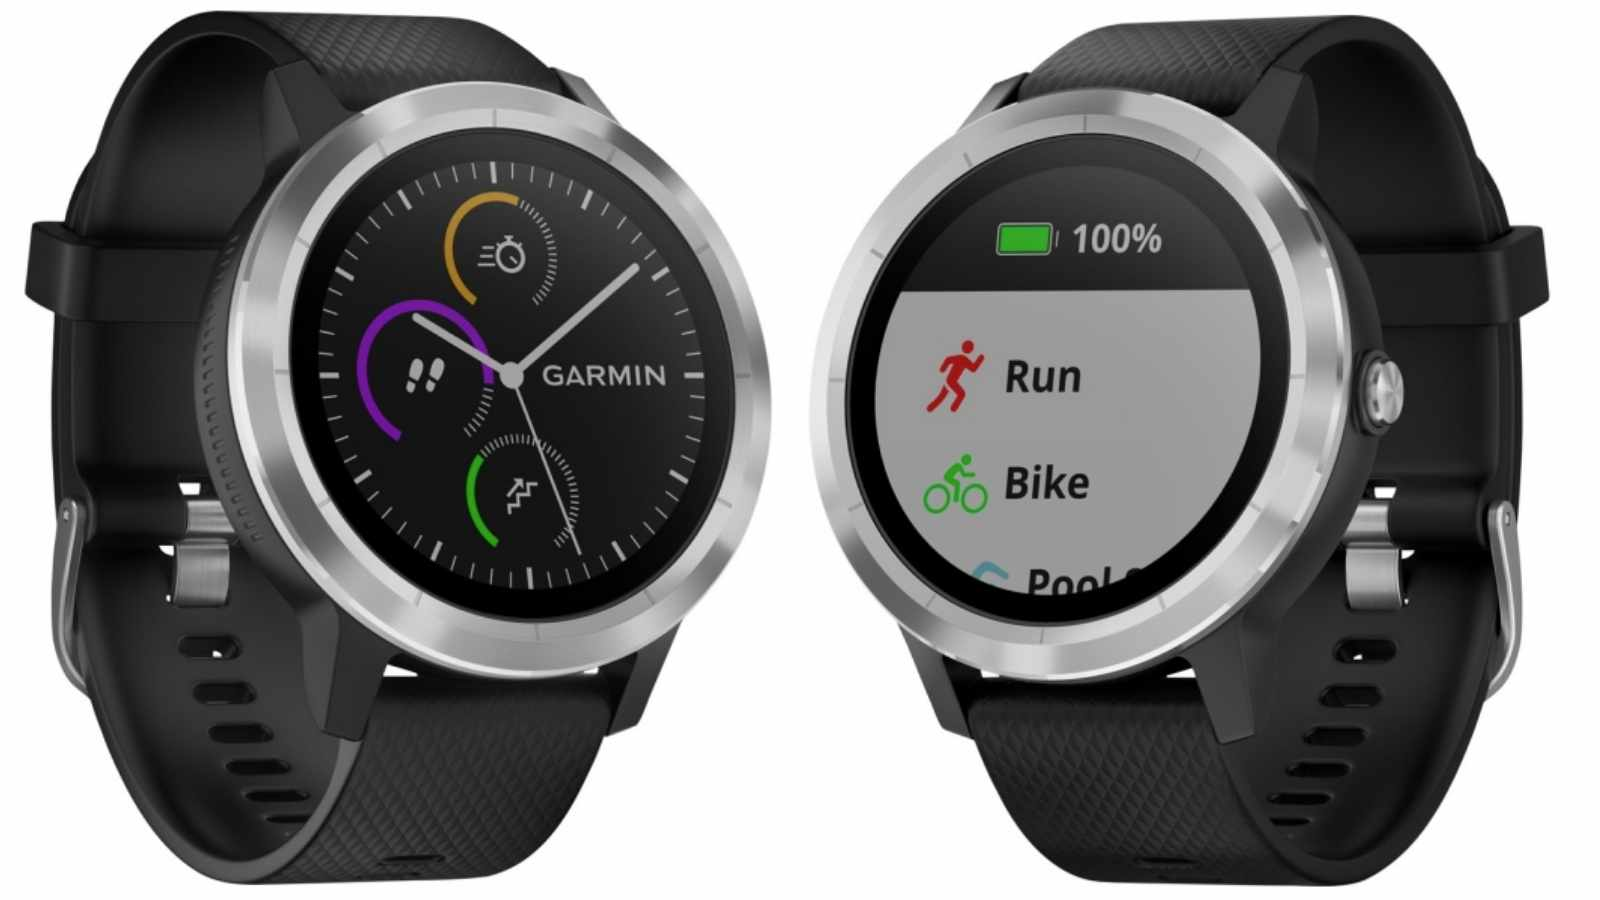 The Garmin Vivoactive 3 is a great SmartWatch for those looking to track progress without getting bogged down in data